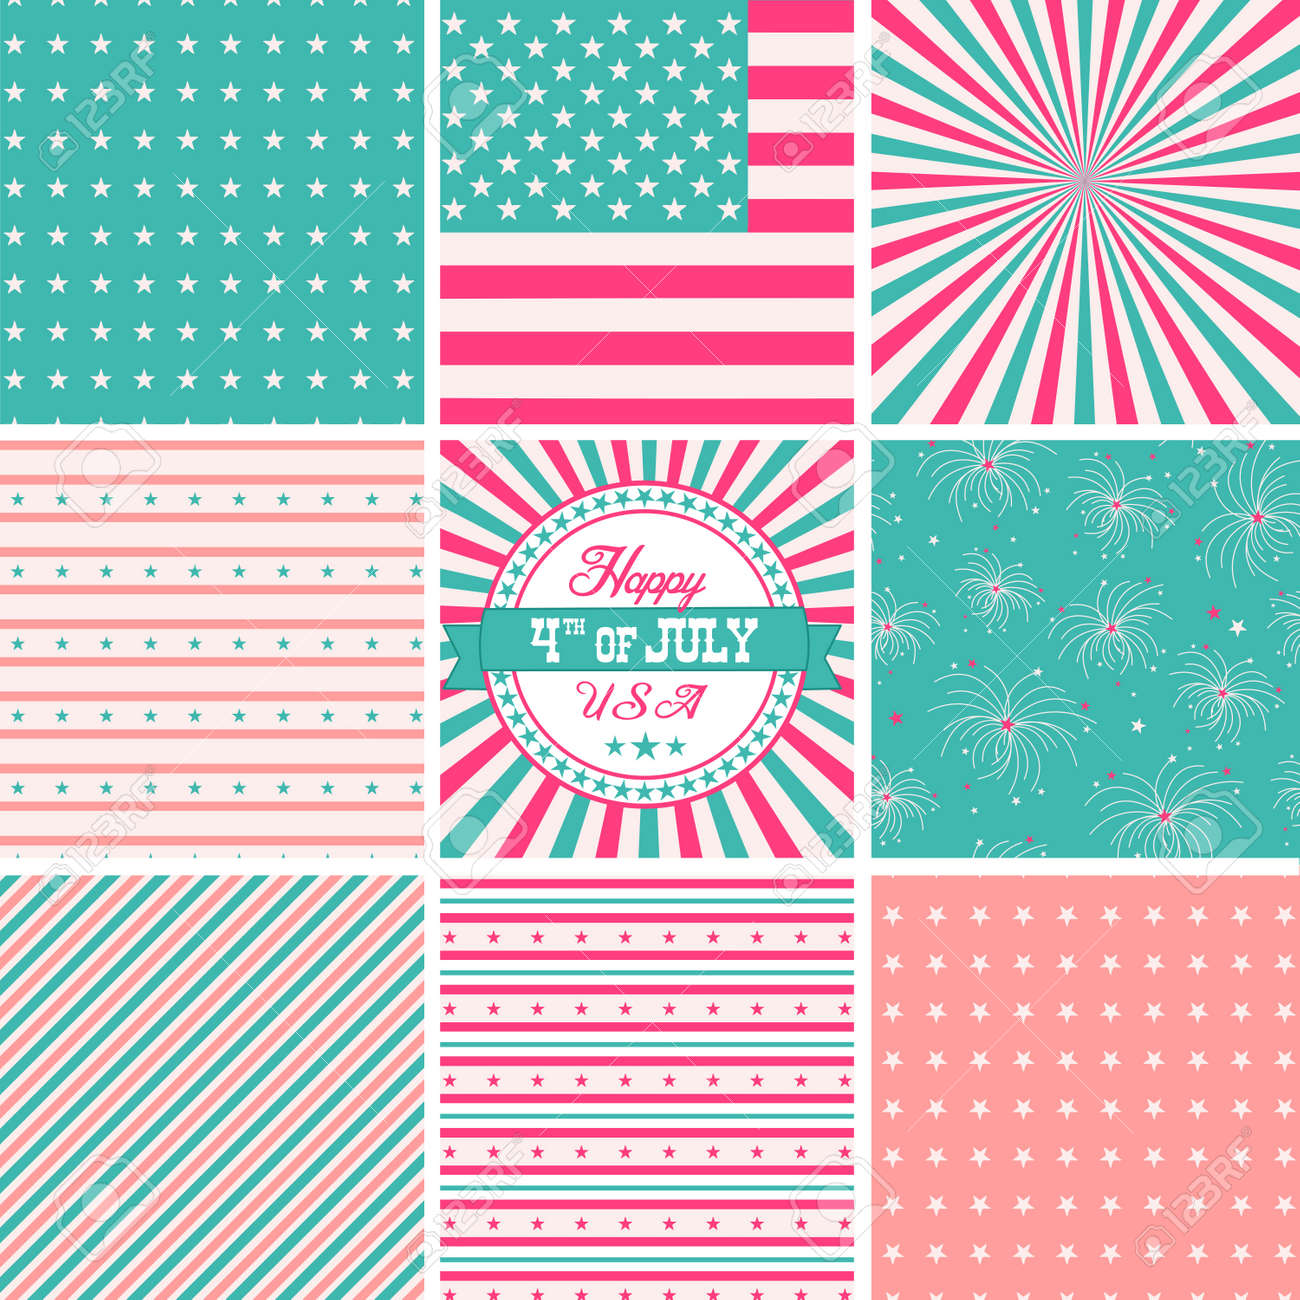 Pink White And Turquose, stars and stripes - USA backgrounds Stock Vector - 20468401